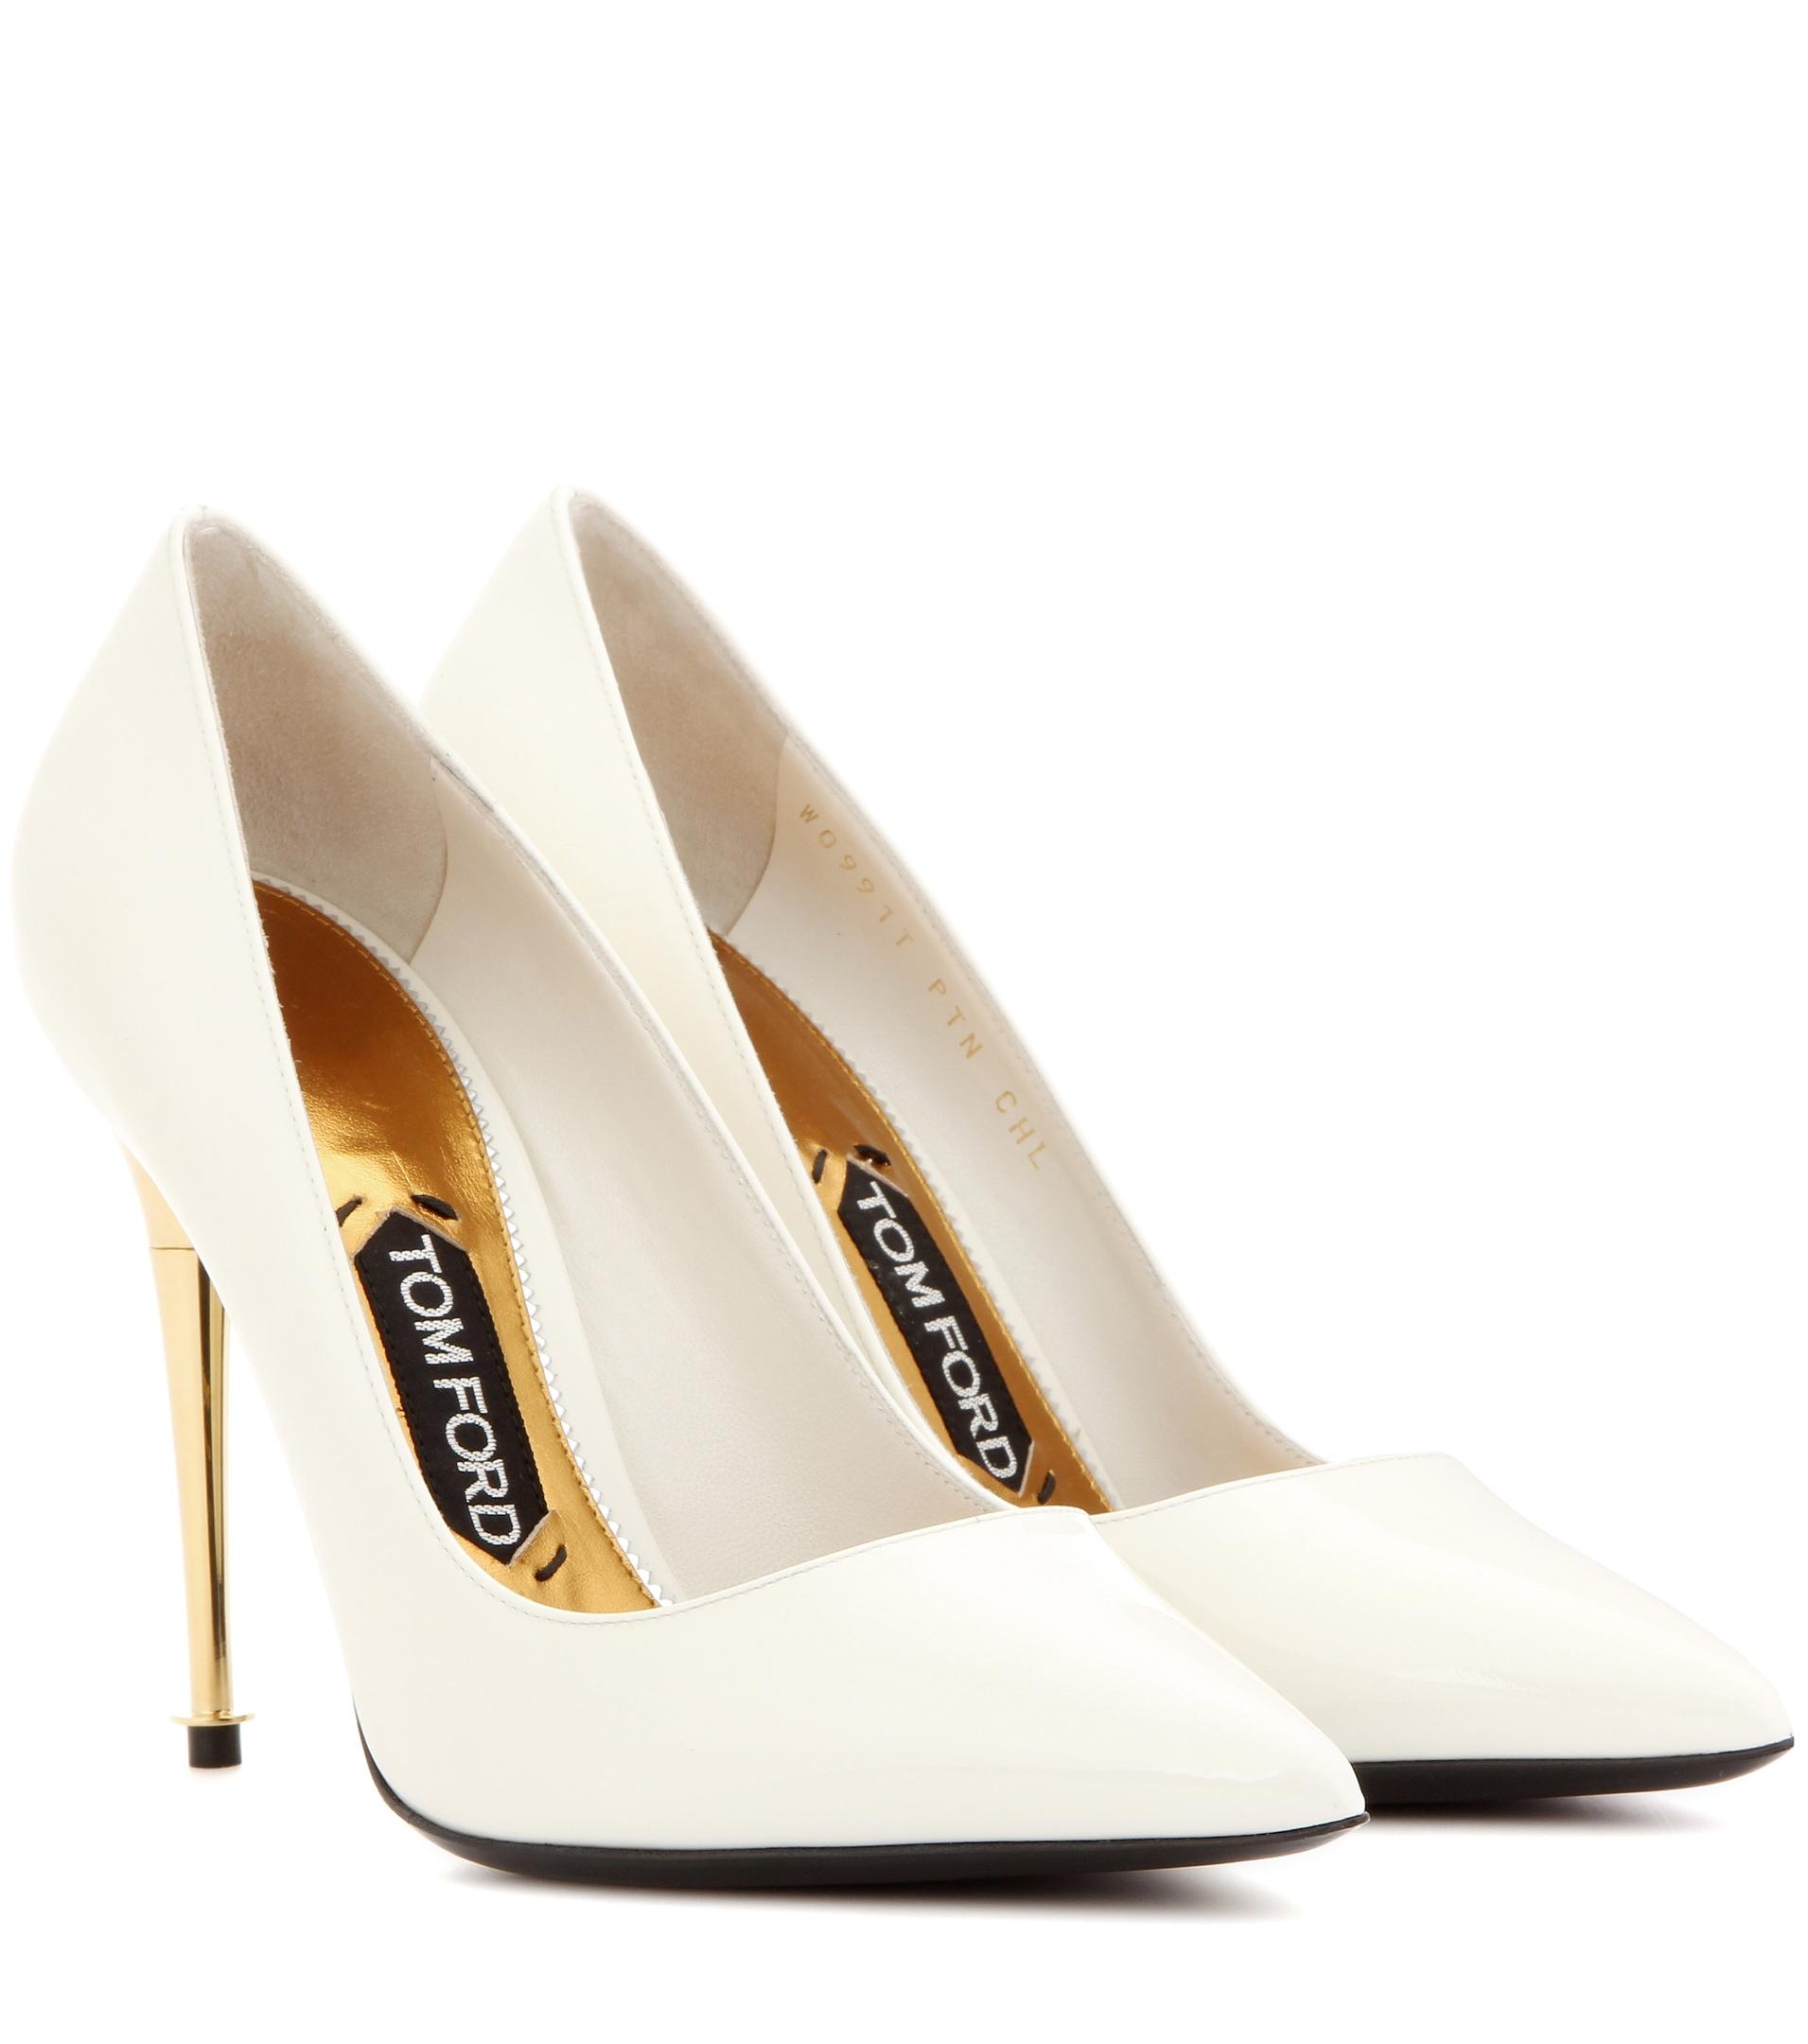 tom ford patent leather pumps in white lyst